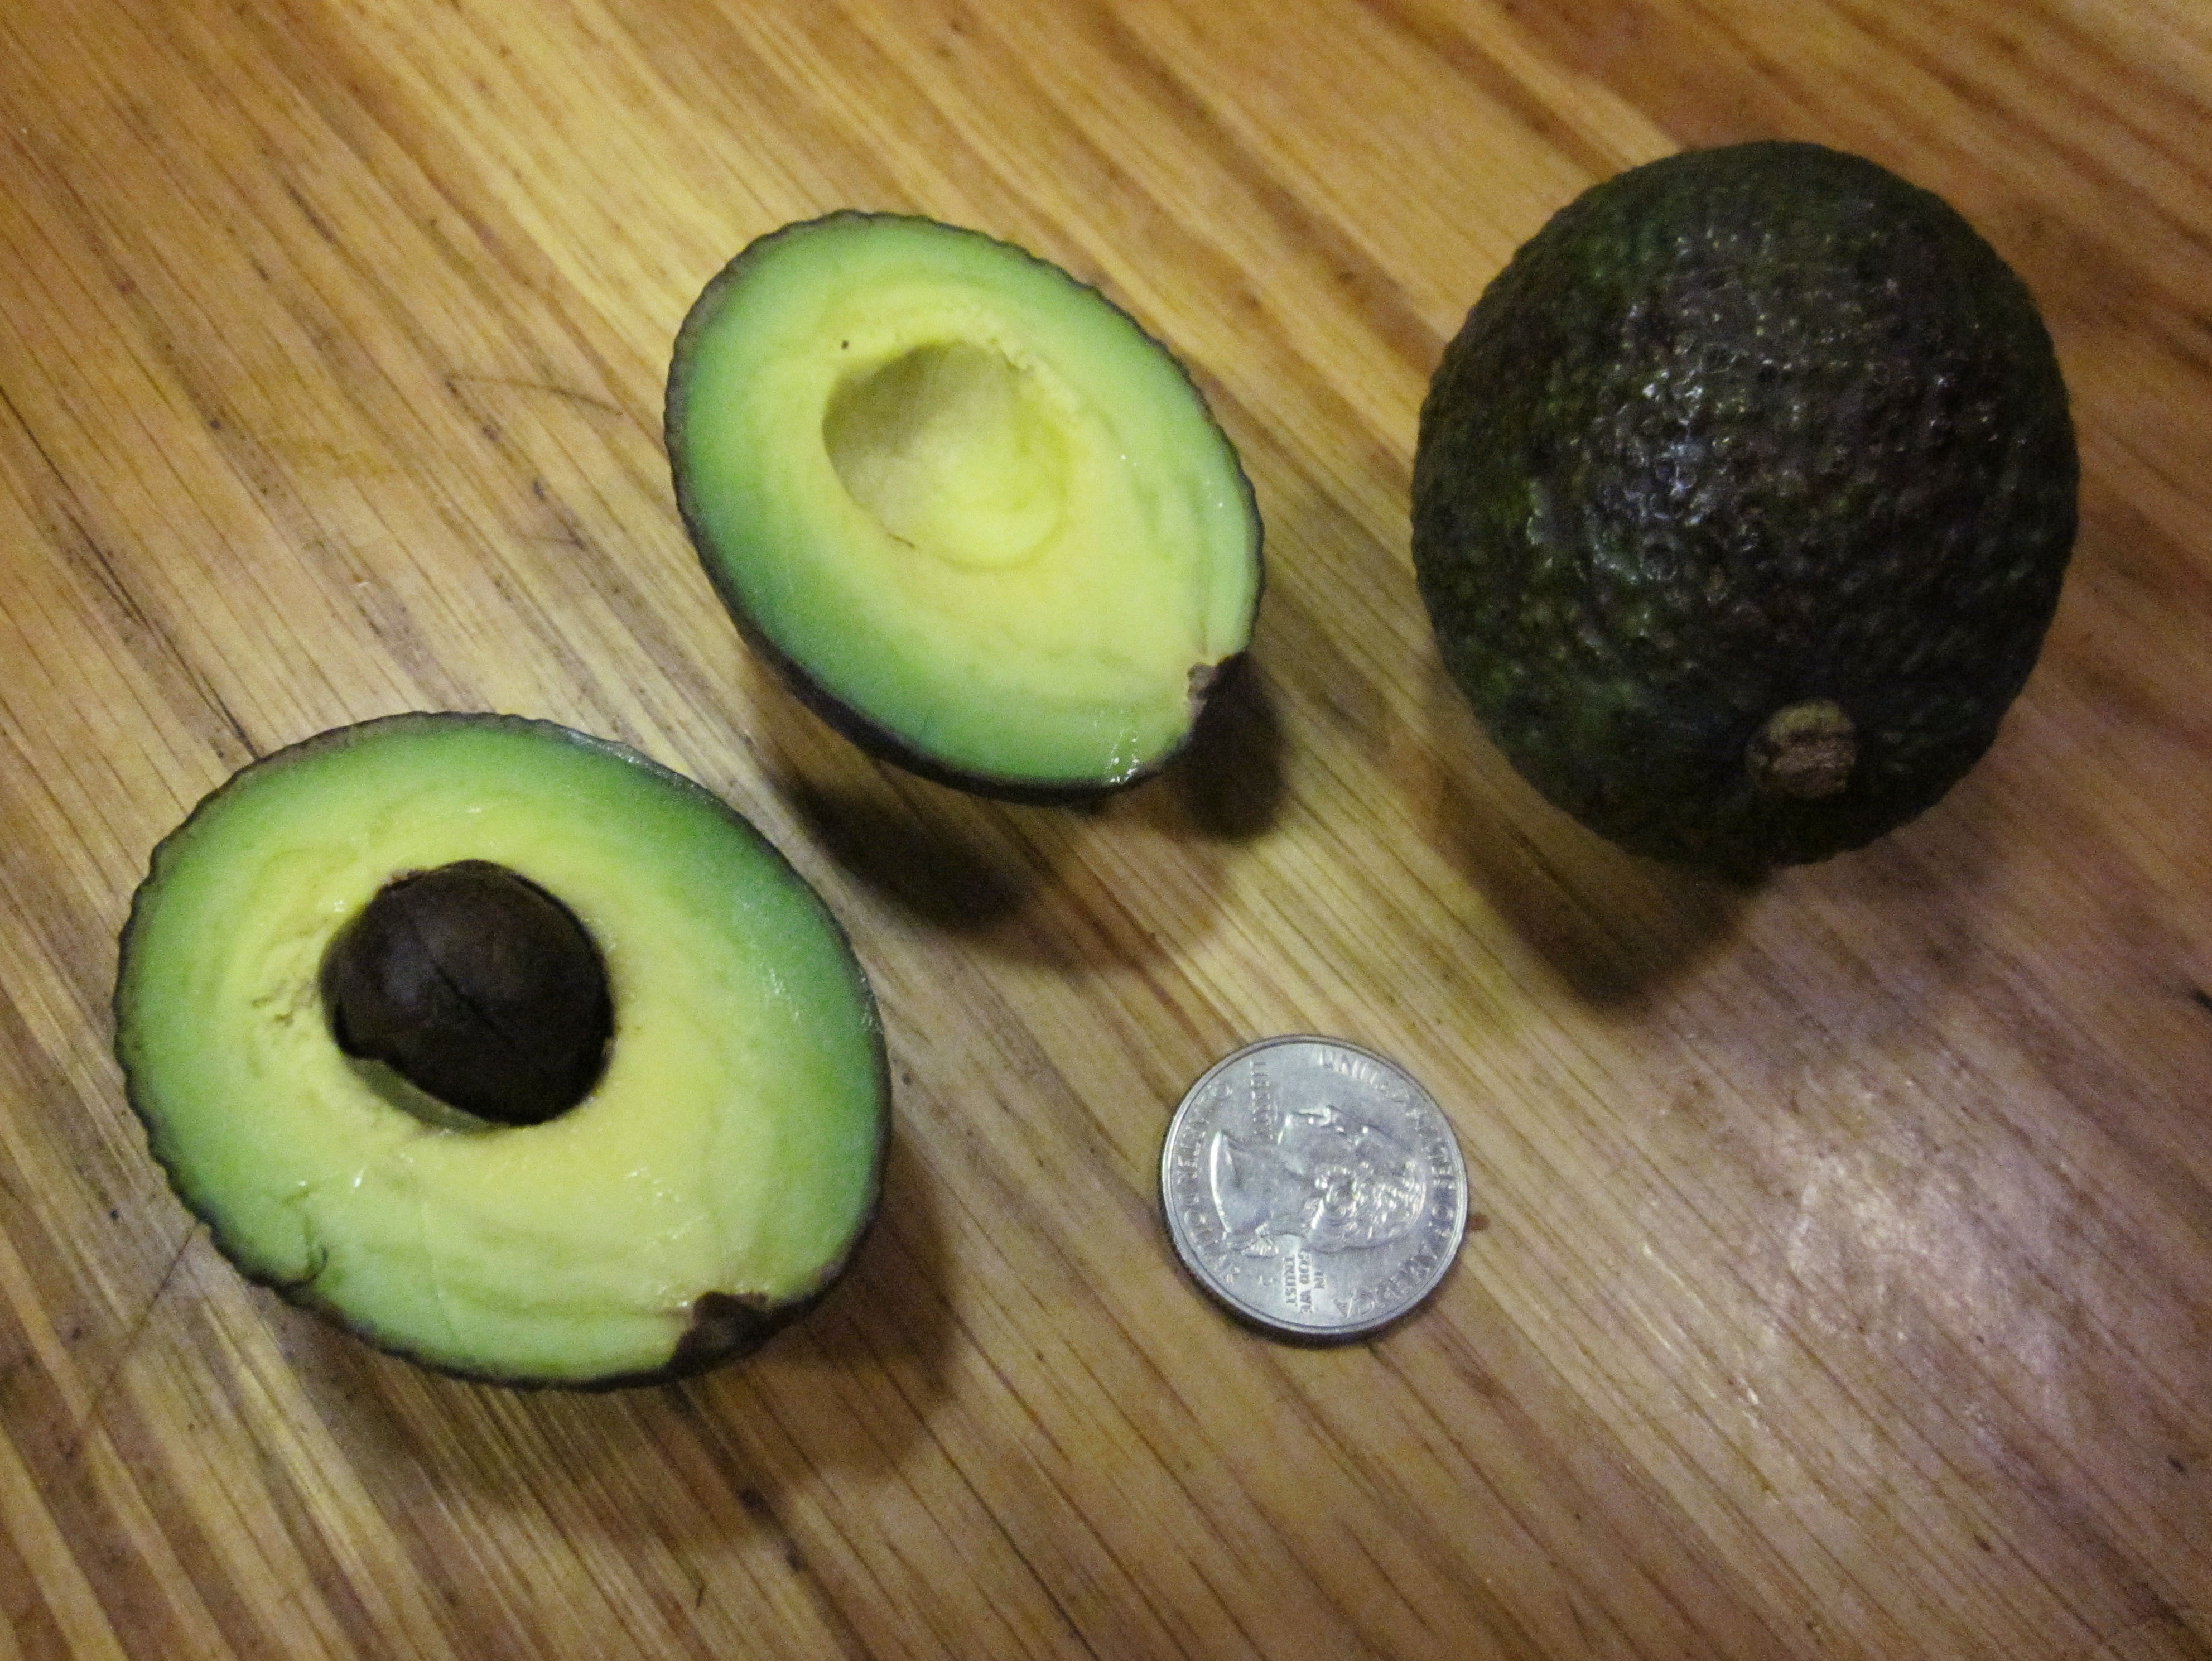 Incredibly Shrinking Avocados: Why This Year's Fruit Are So Tiny